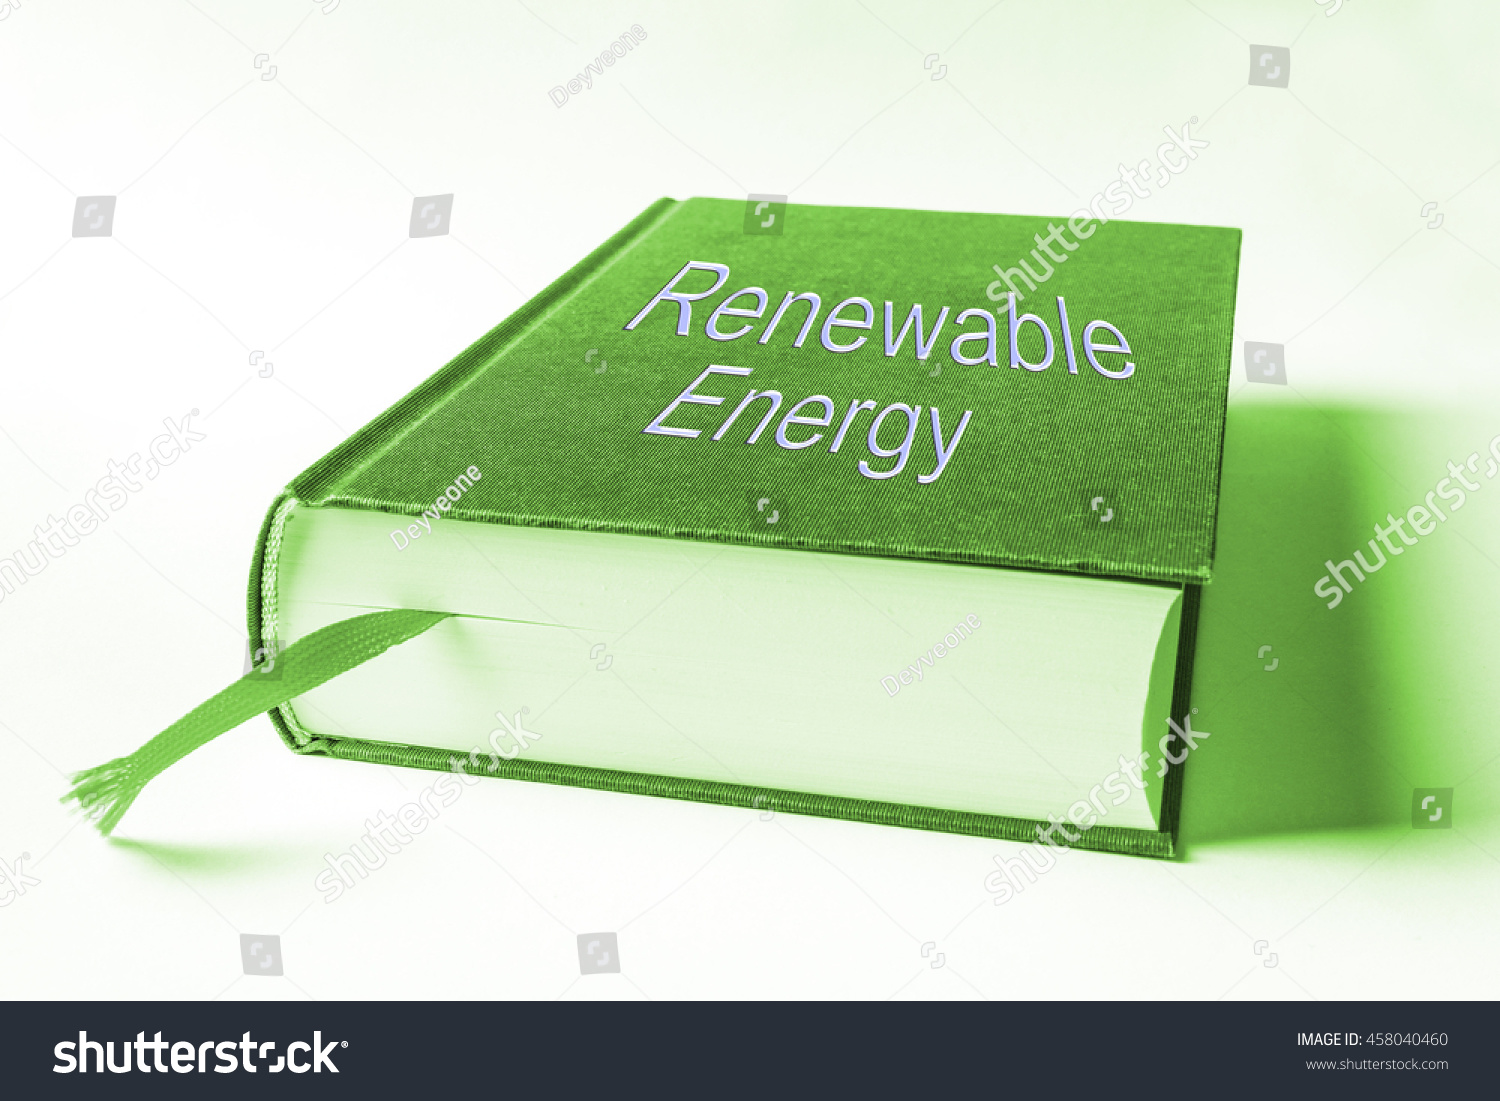 Book about renewable energy symbol knowledge stock photo 458040460 book about renewable energy symbol for knowledge biocorpaavc Image collections